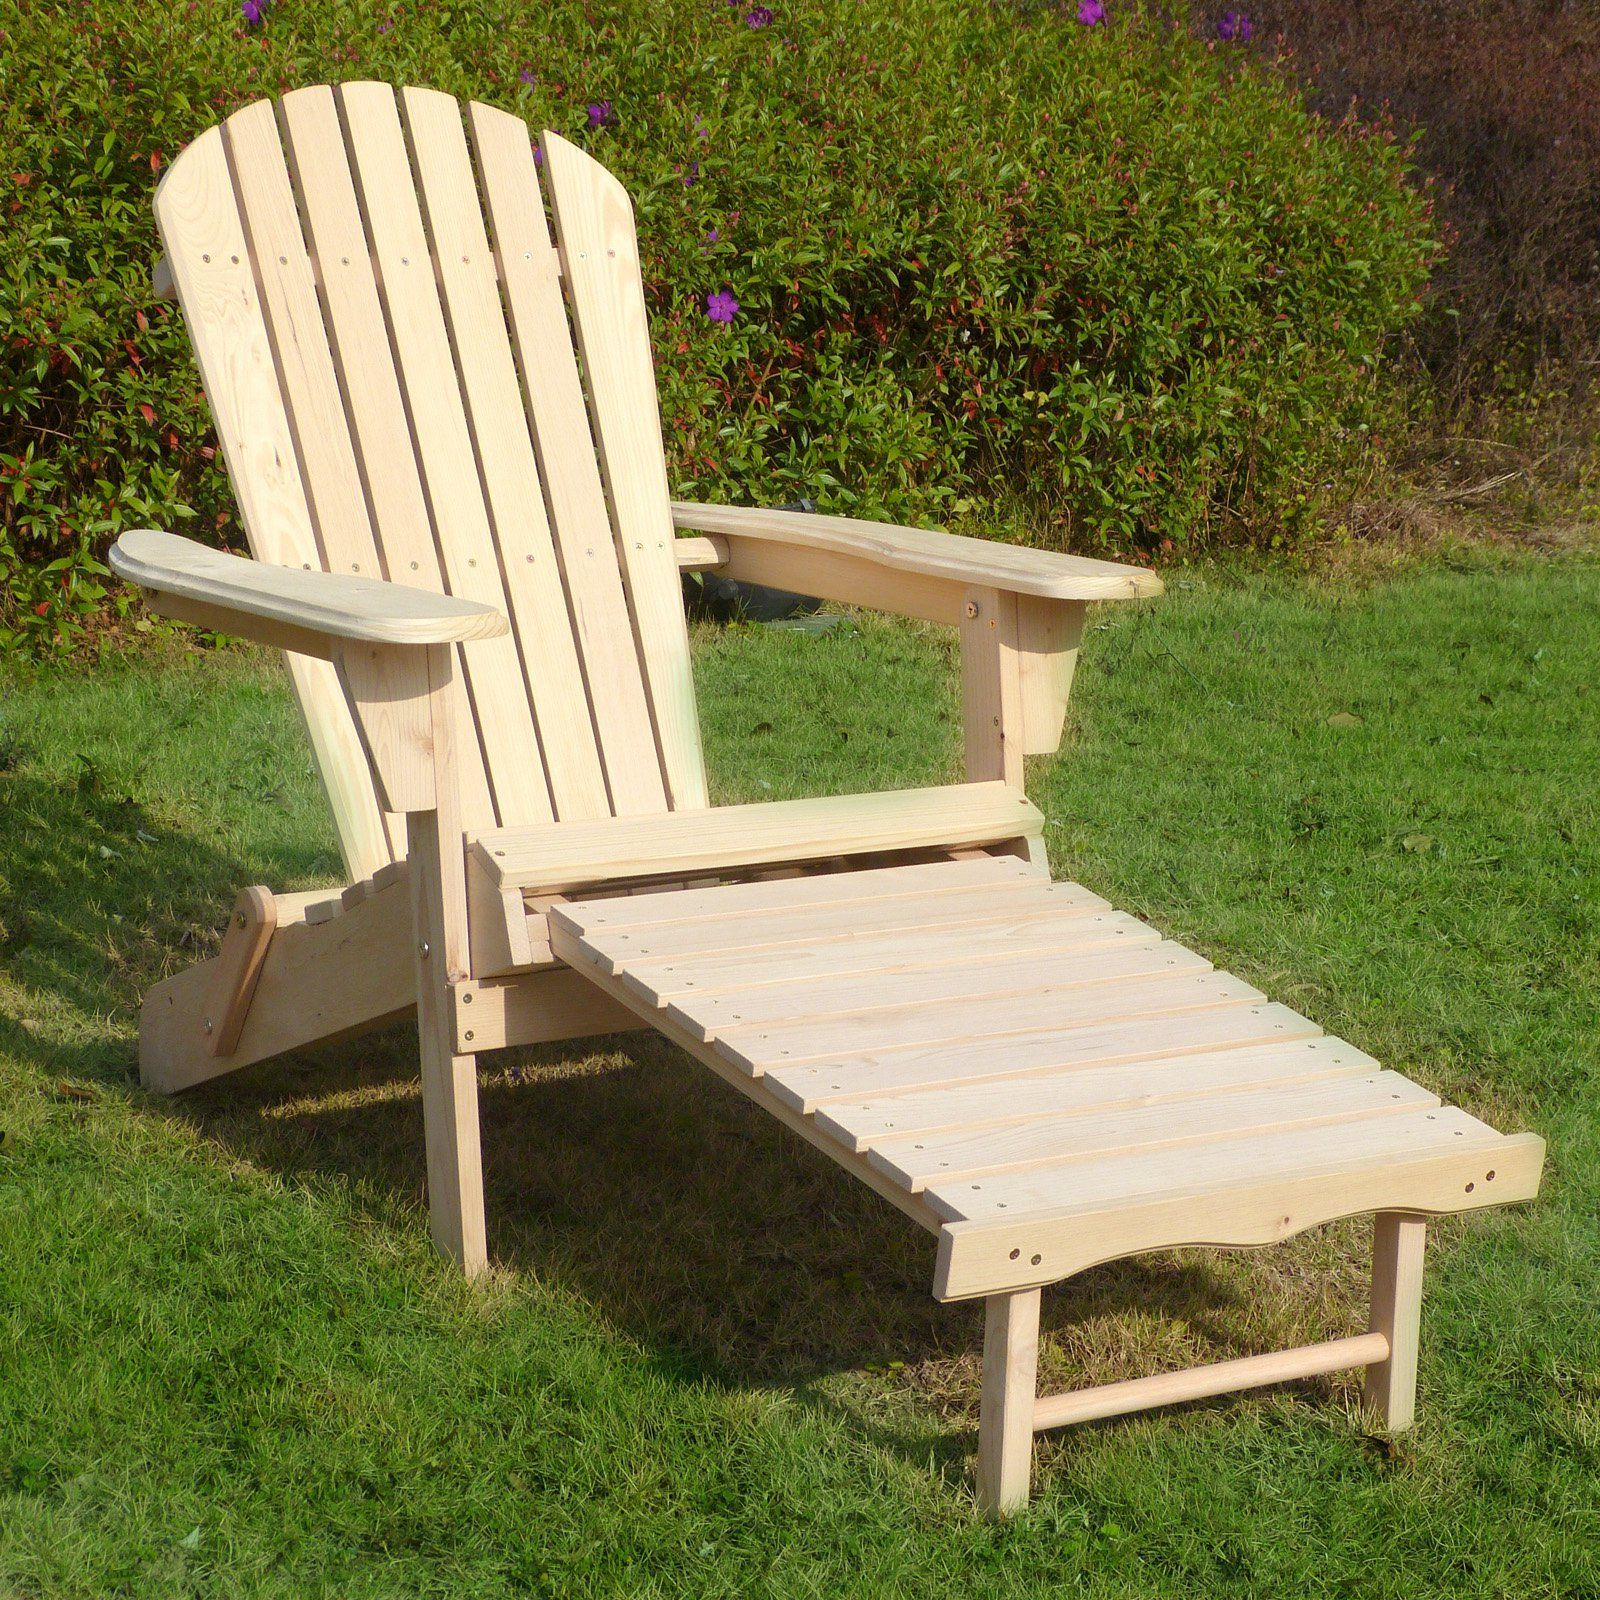 Merry Products Adirondack Chair Kit With Pullout Ottoman